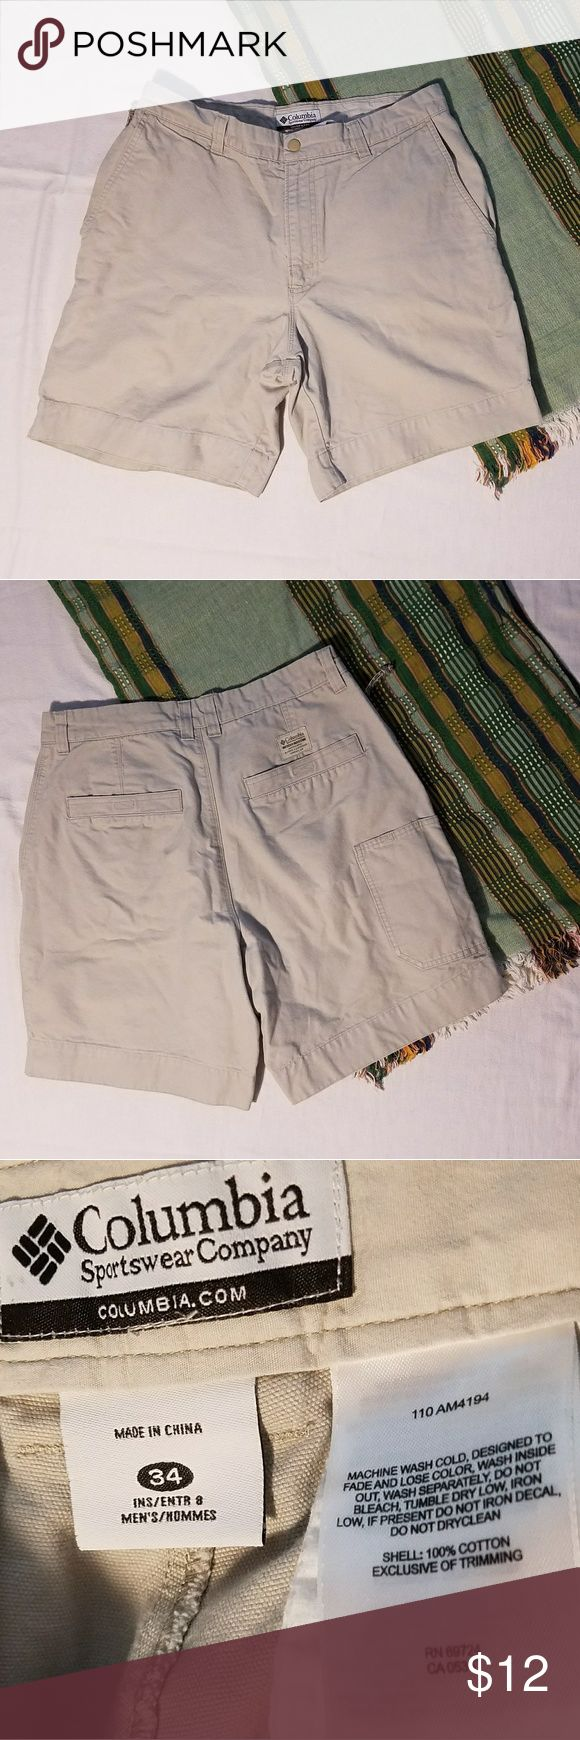 Columbia Sportswear Company Size 34 ~Columbia Sportswear Company  ~Size: 34 ~Measurements: Coming Soon  *Measurements are approximate* ~Gently Used | In Good Condition | No Rips Or Stains  ~Feel free to ask Questions and Make an Offer~ ~Stock#: Columbia Shorts Cargo